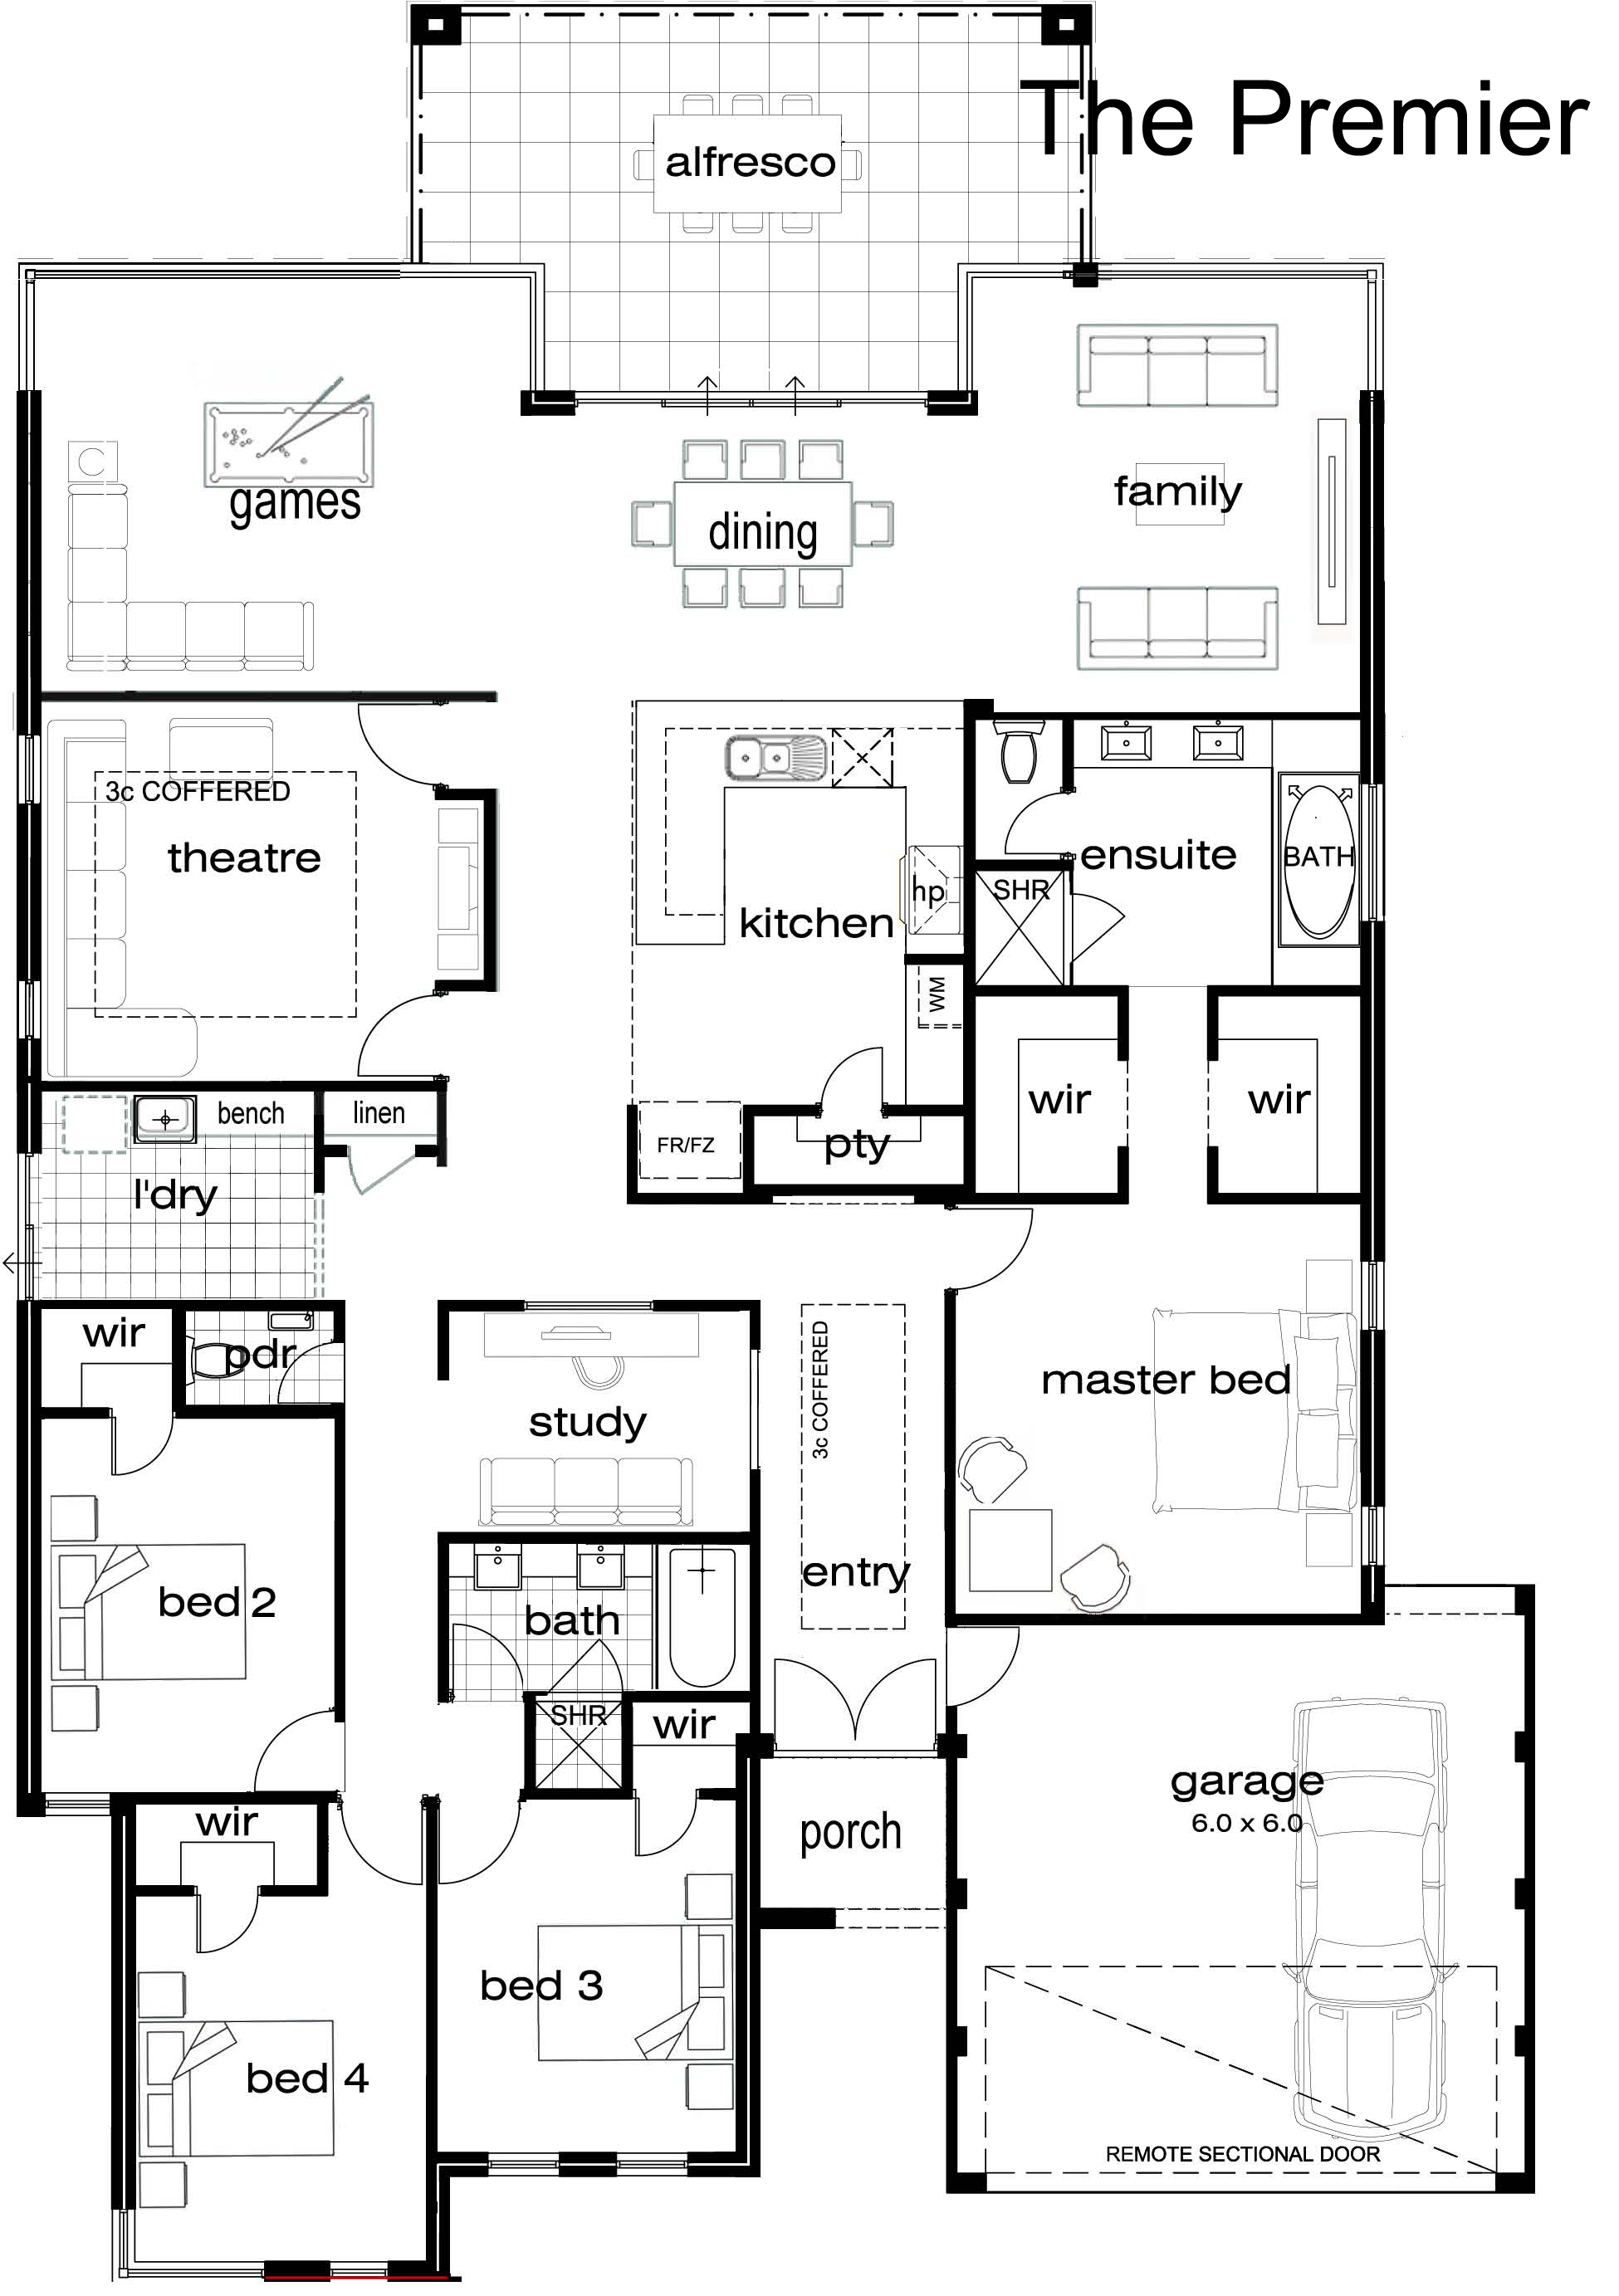 5 Bedroom Single Story House Plans Bedroom At Real Estate